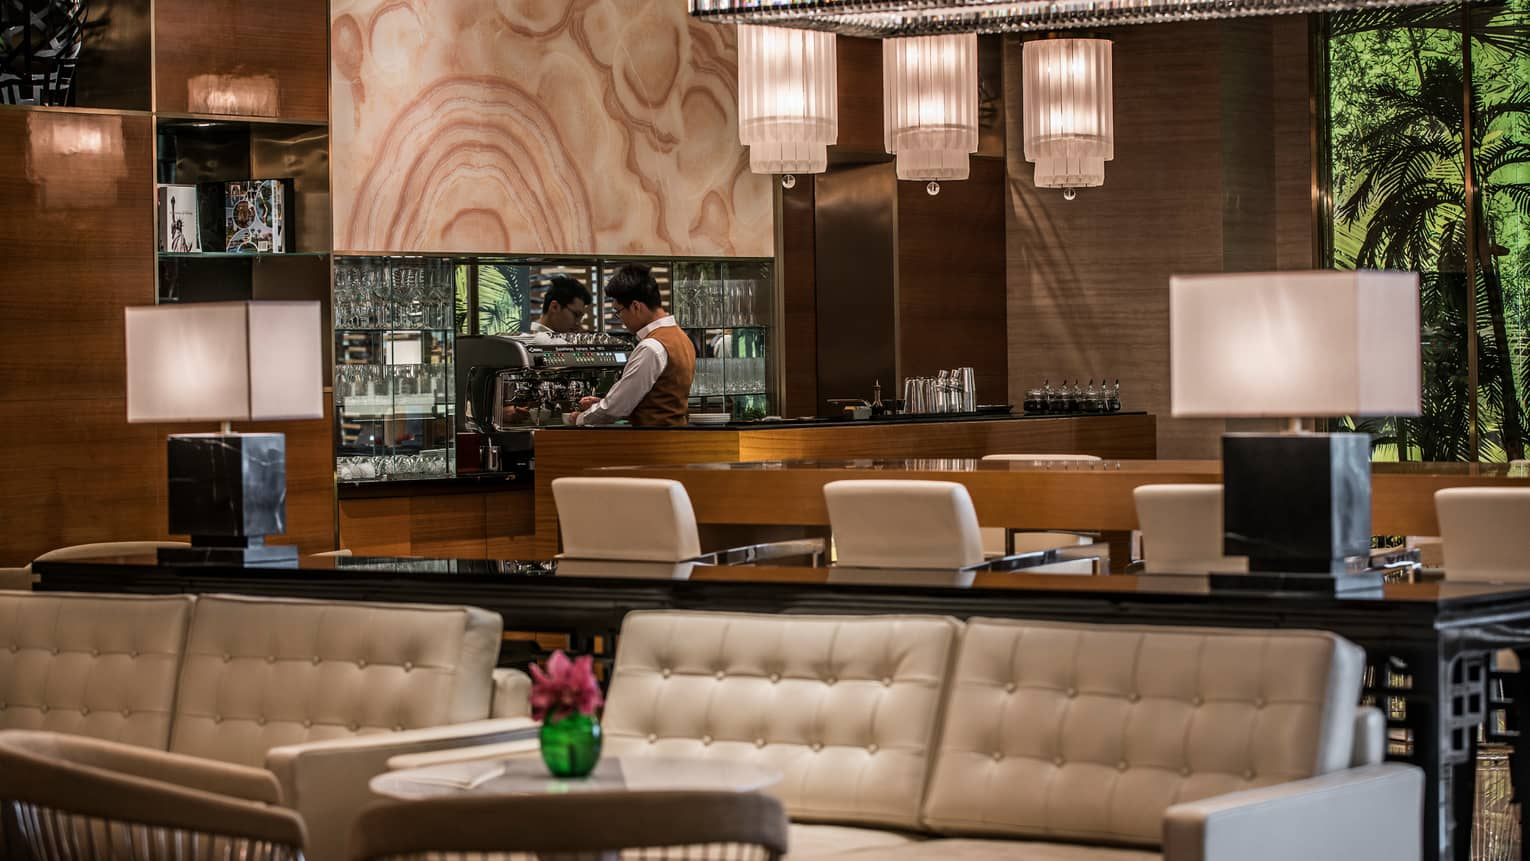 La Sala staff makes coffee at espresso machine behind wood bar, white leather banquettes